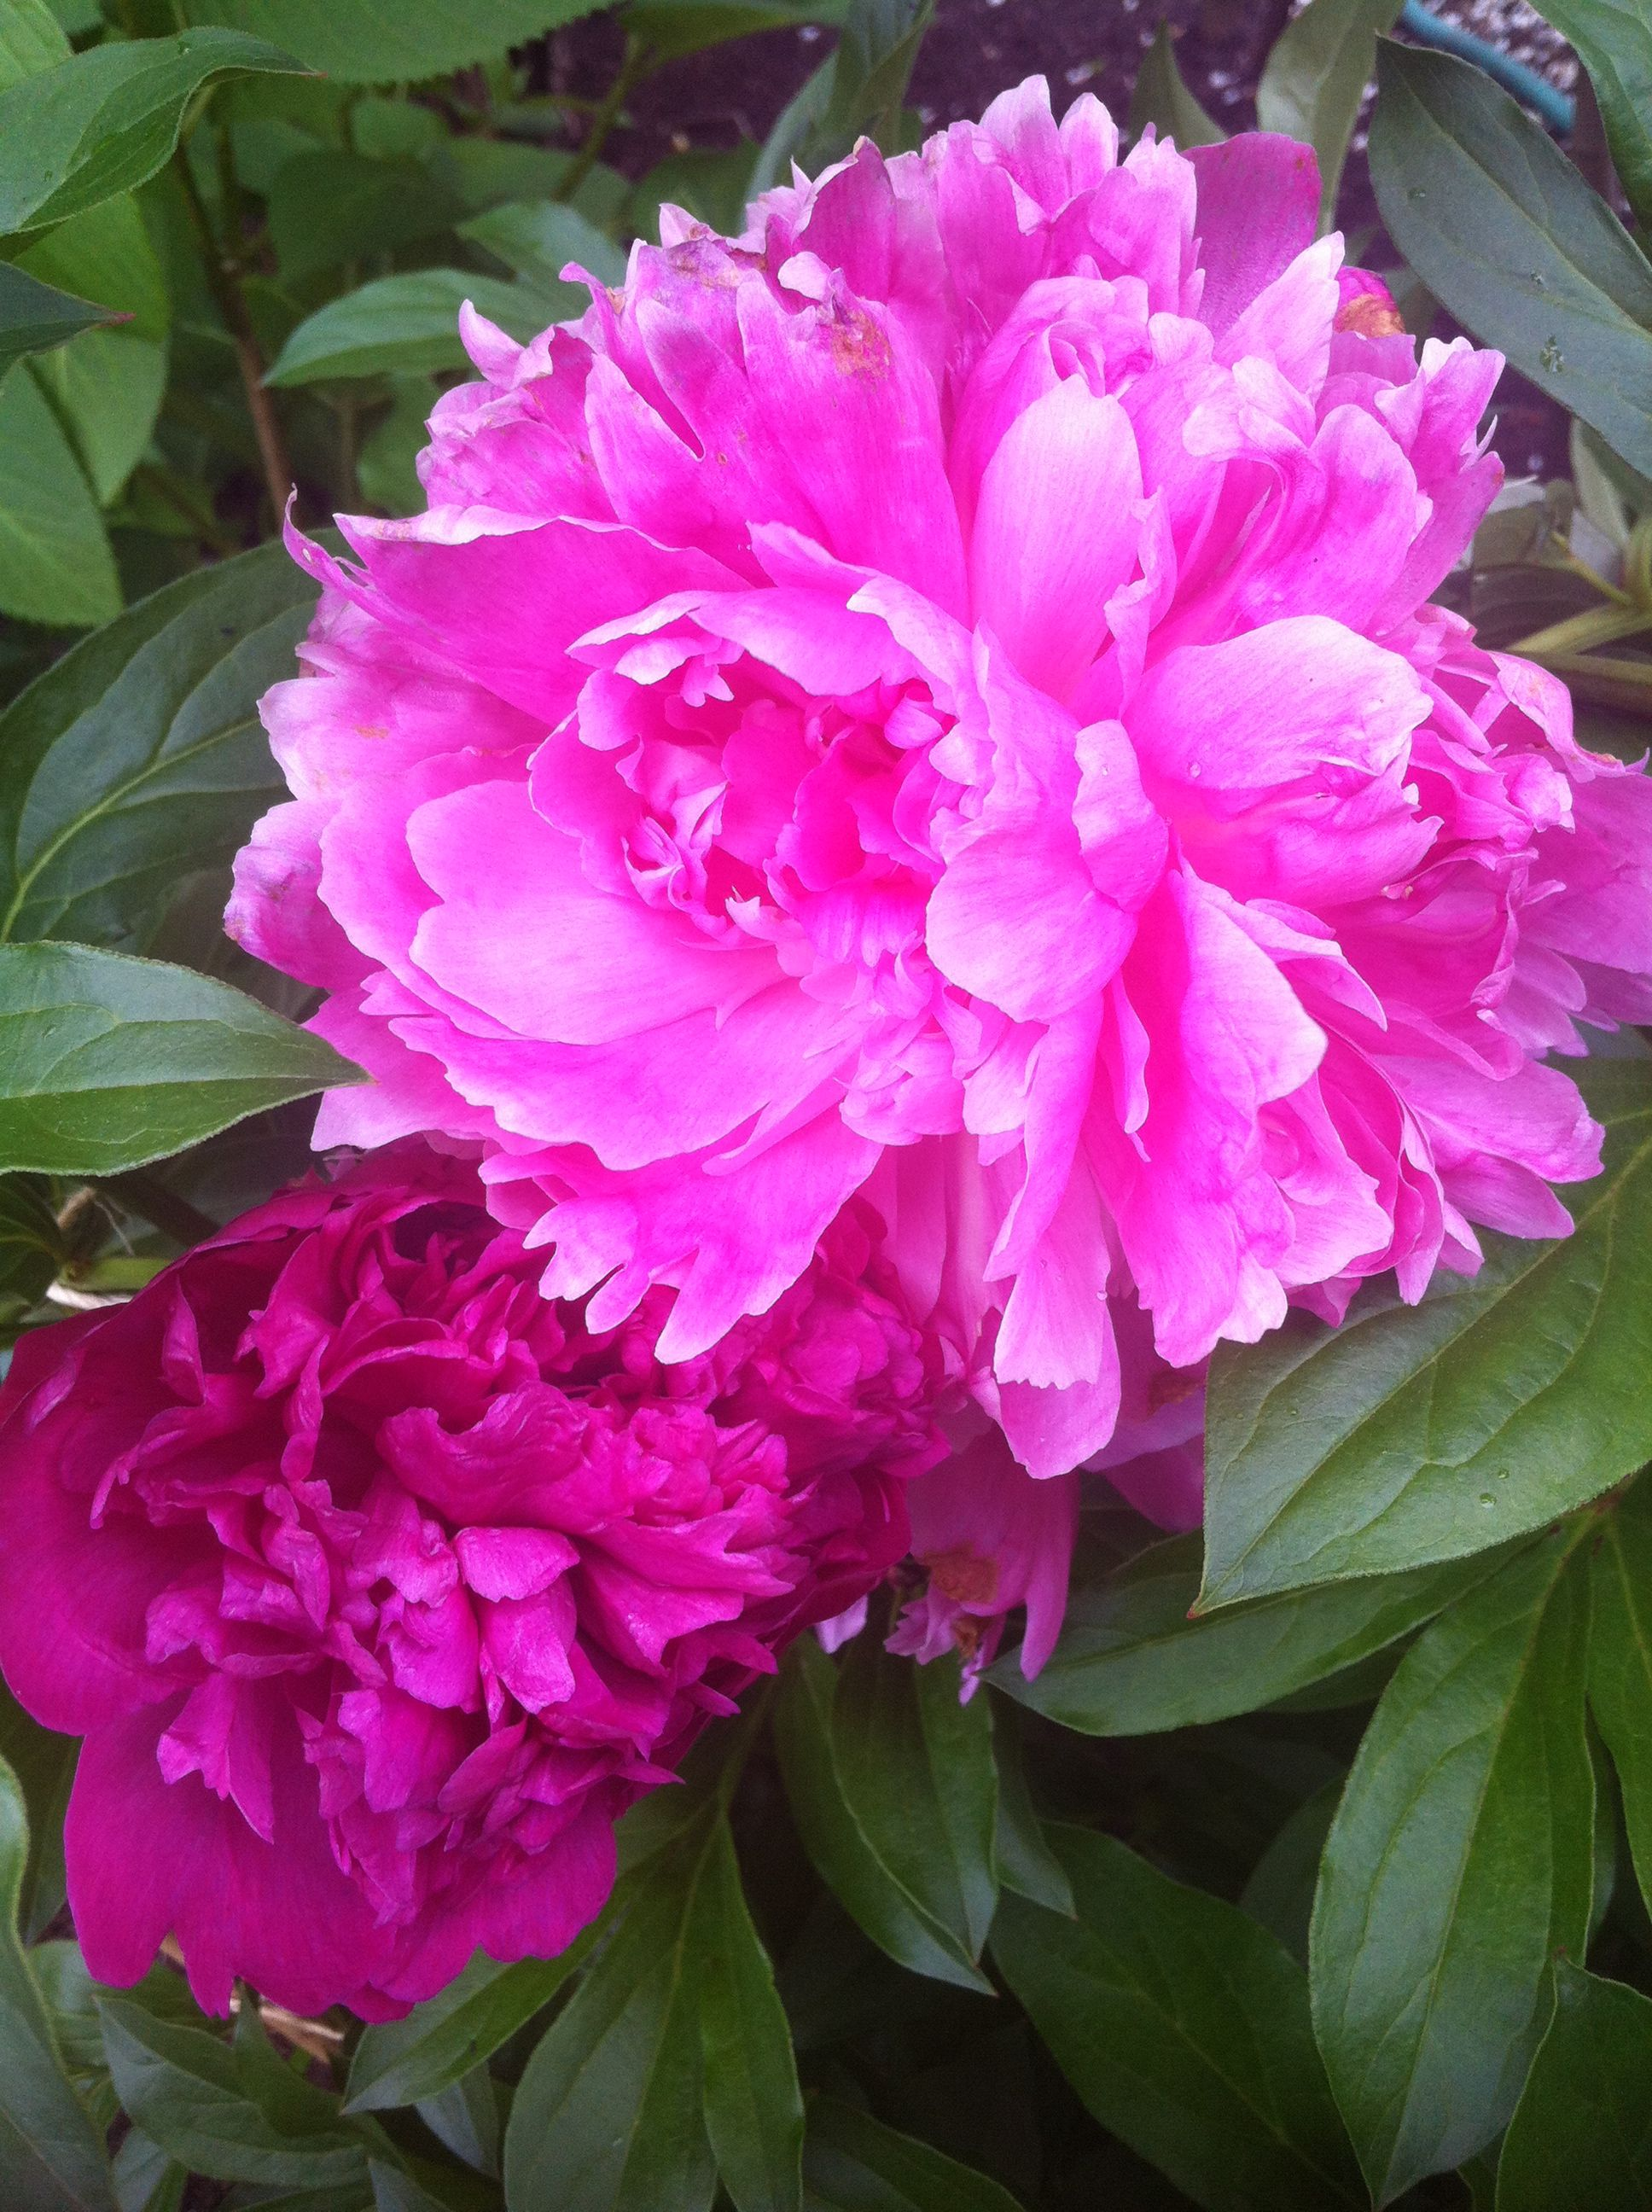 On peonies the most beautiful flowers love food sex erotic on peonies the most beautiful flowers love food sex erotic dhlflorist Images